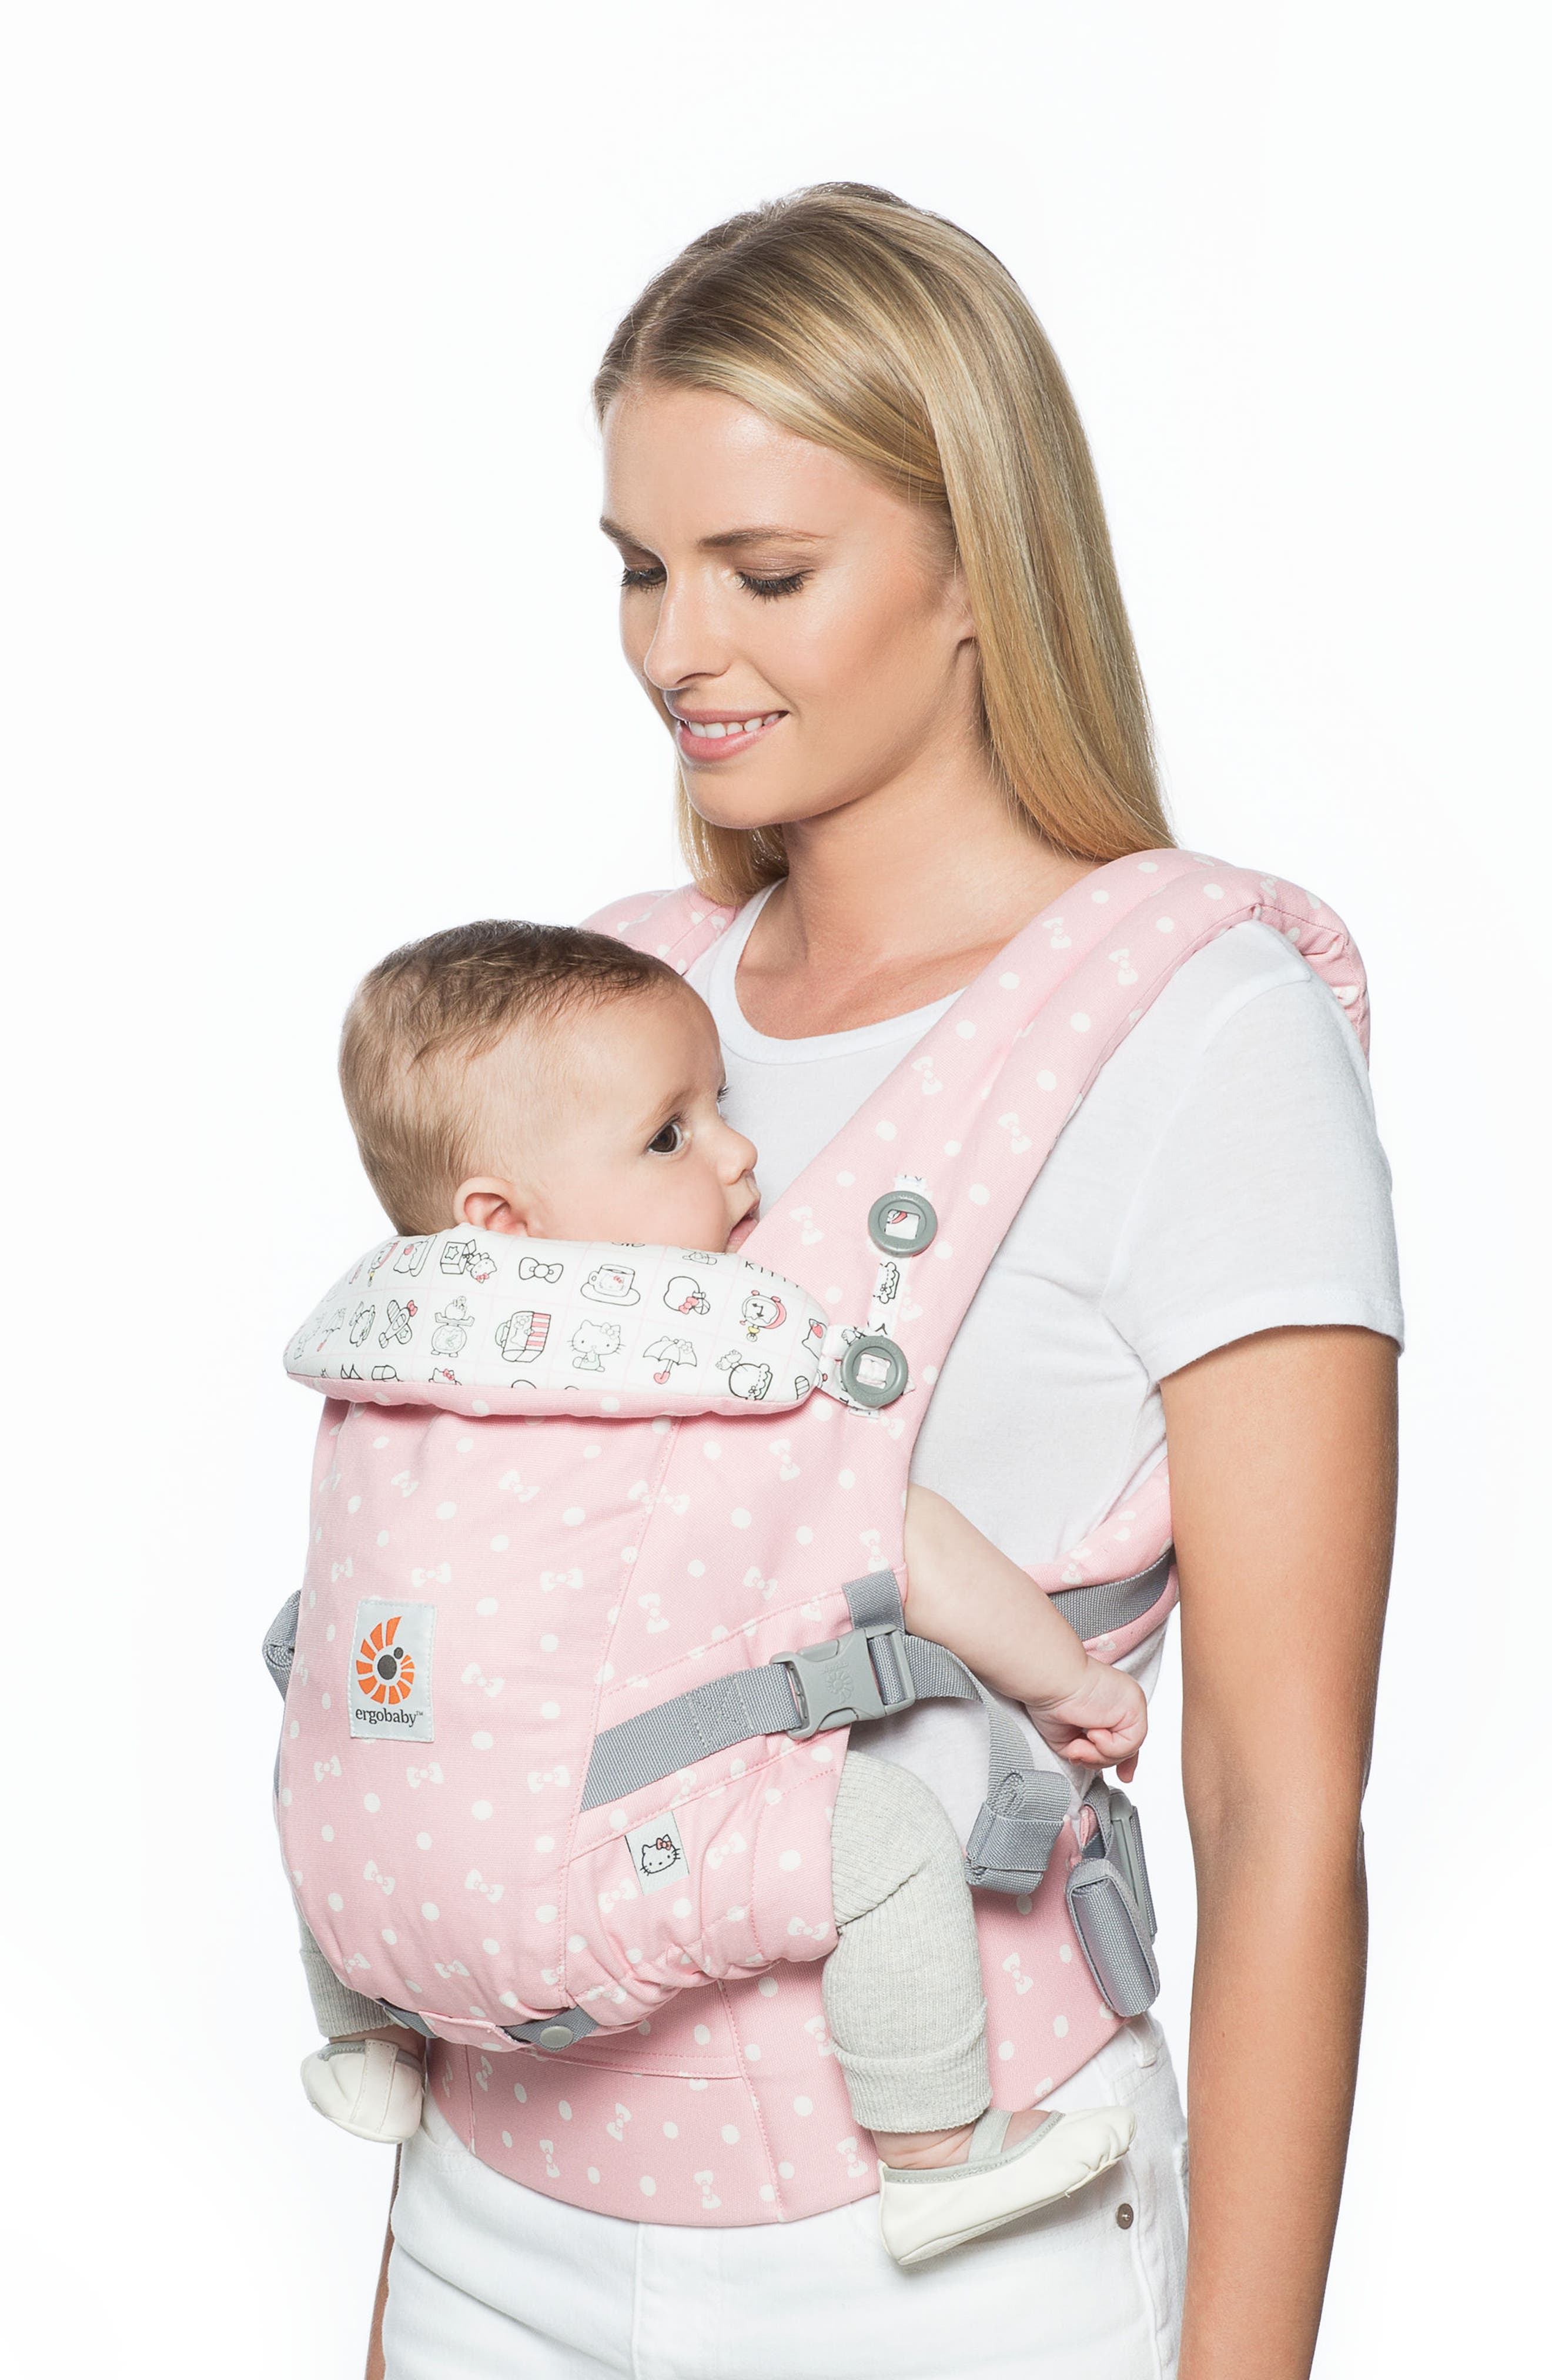 x Hello Kitty<sup>®</sup> Limited Edition Three Position ADAPT Baby Carrier,                             Alternate thumbnail 4, color,                             400